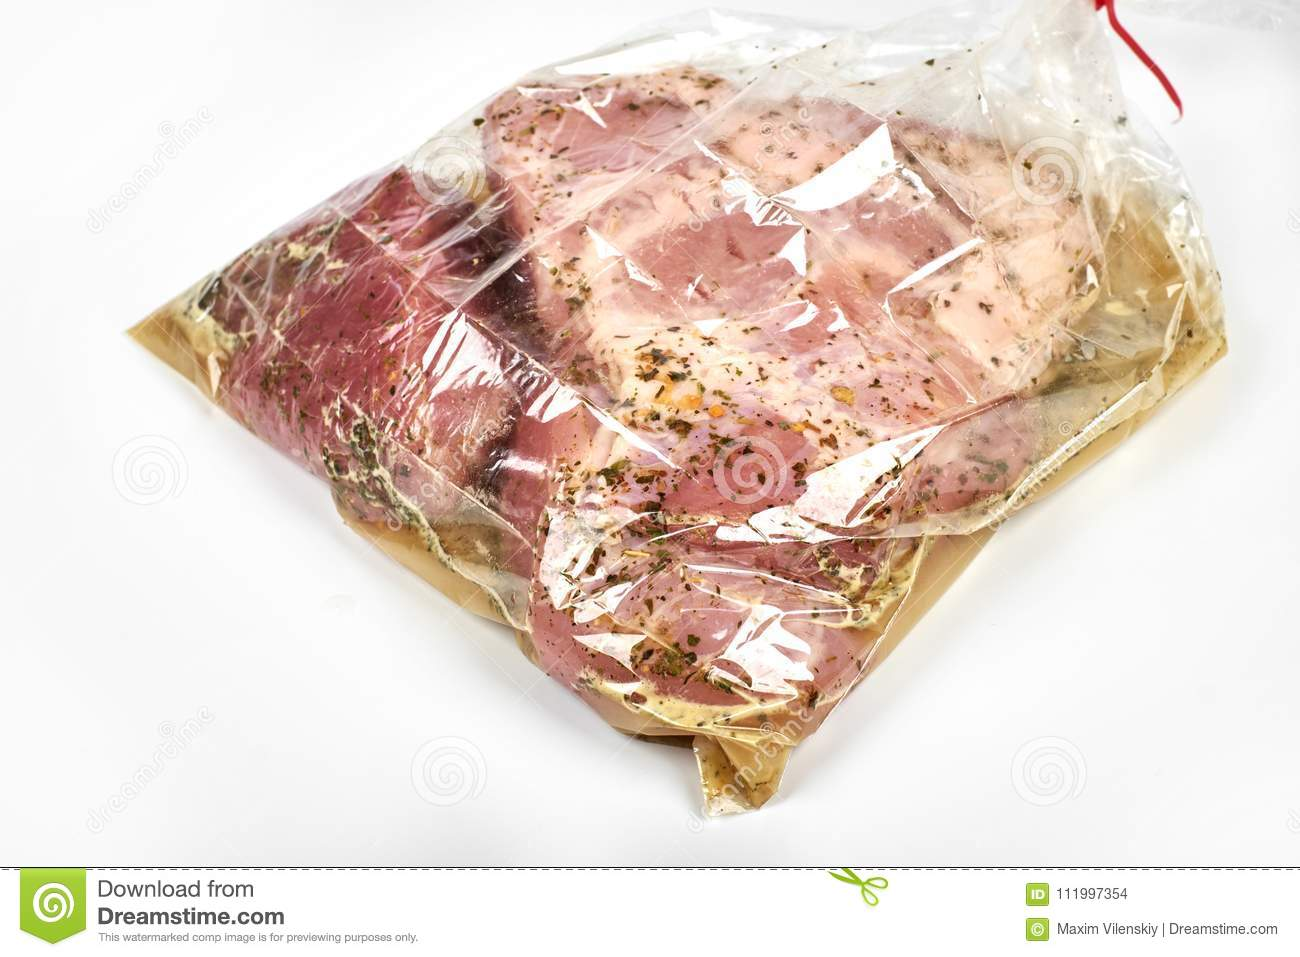 How to cook meat baked in a sleeve